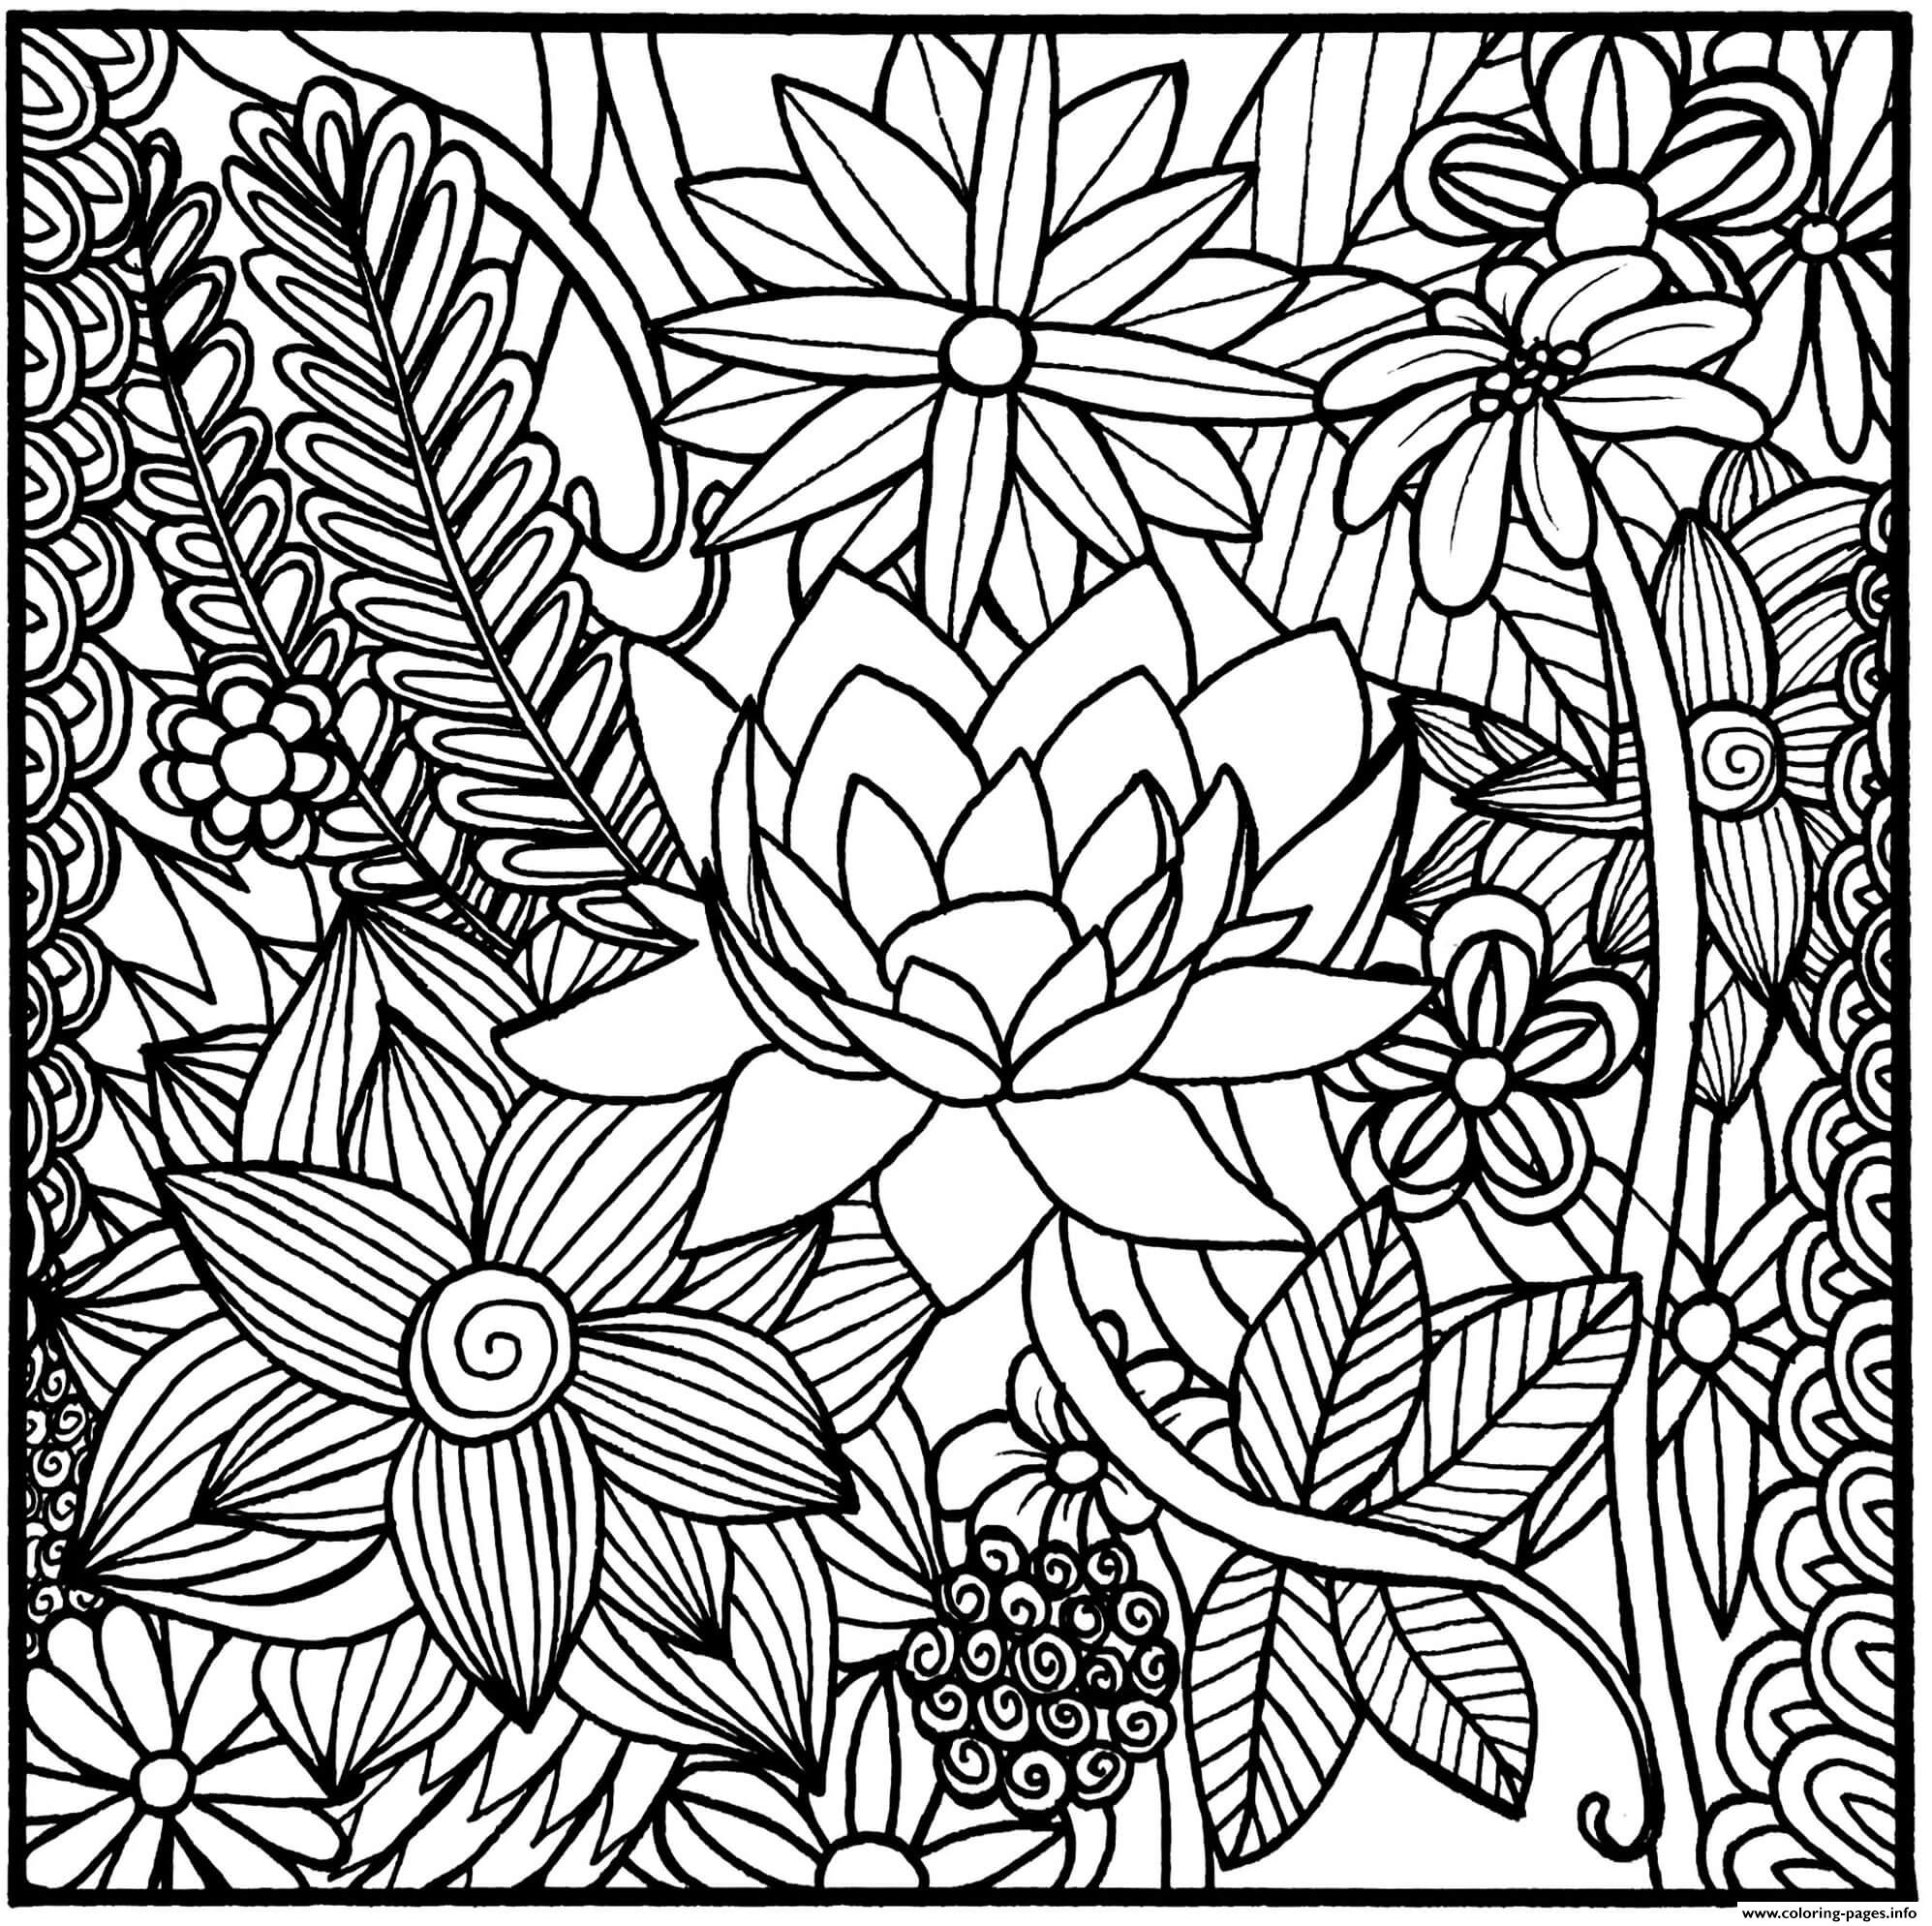 Realistic Flowers In A Square Coloring Pages Printable